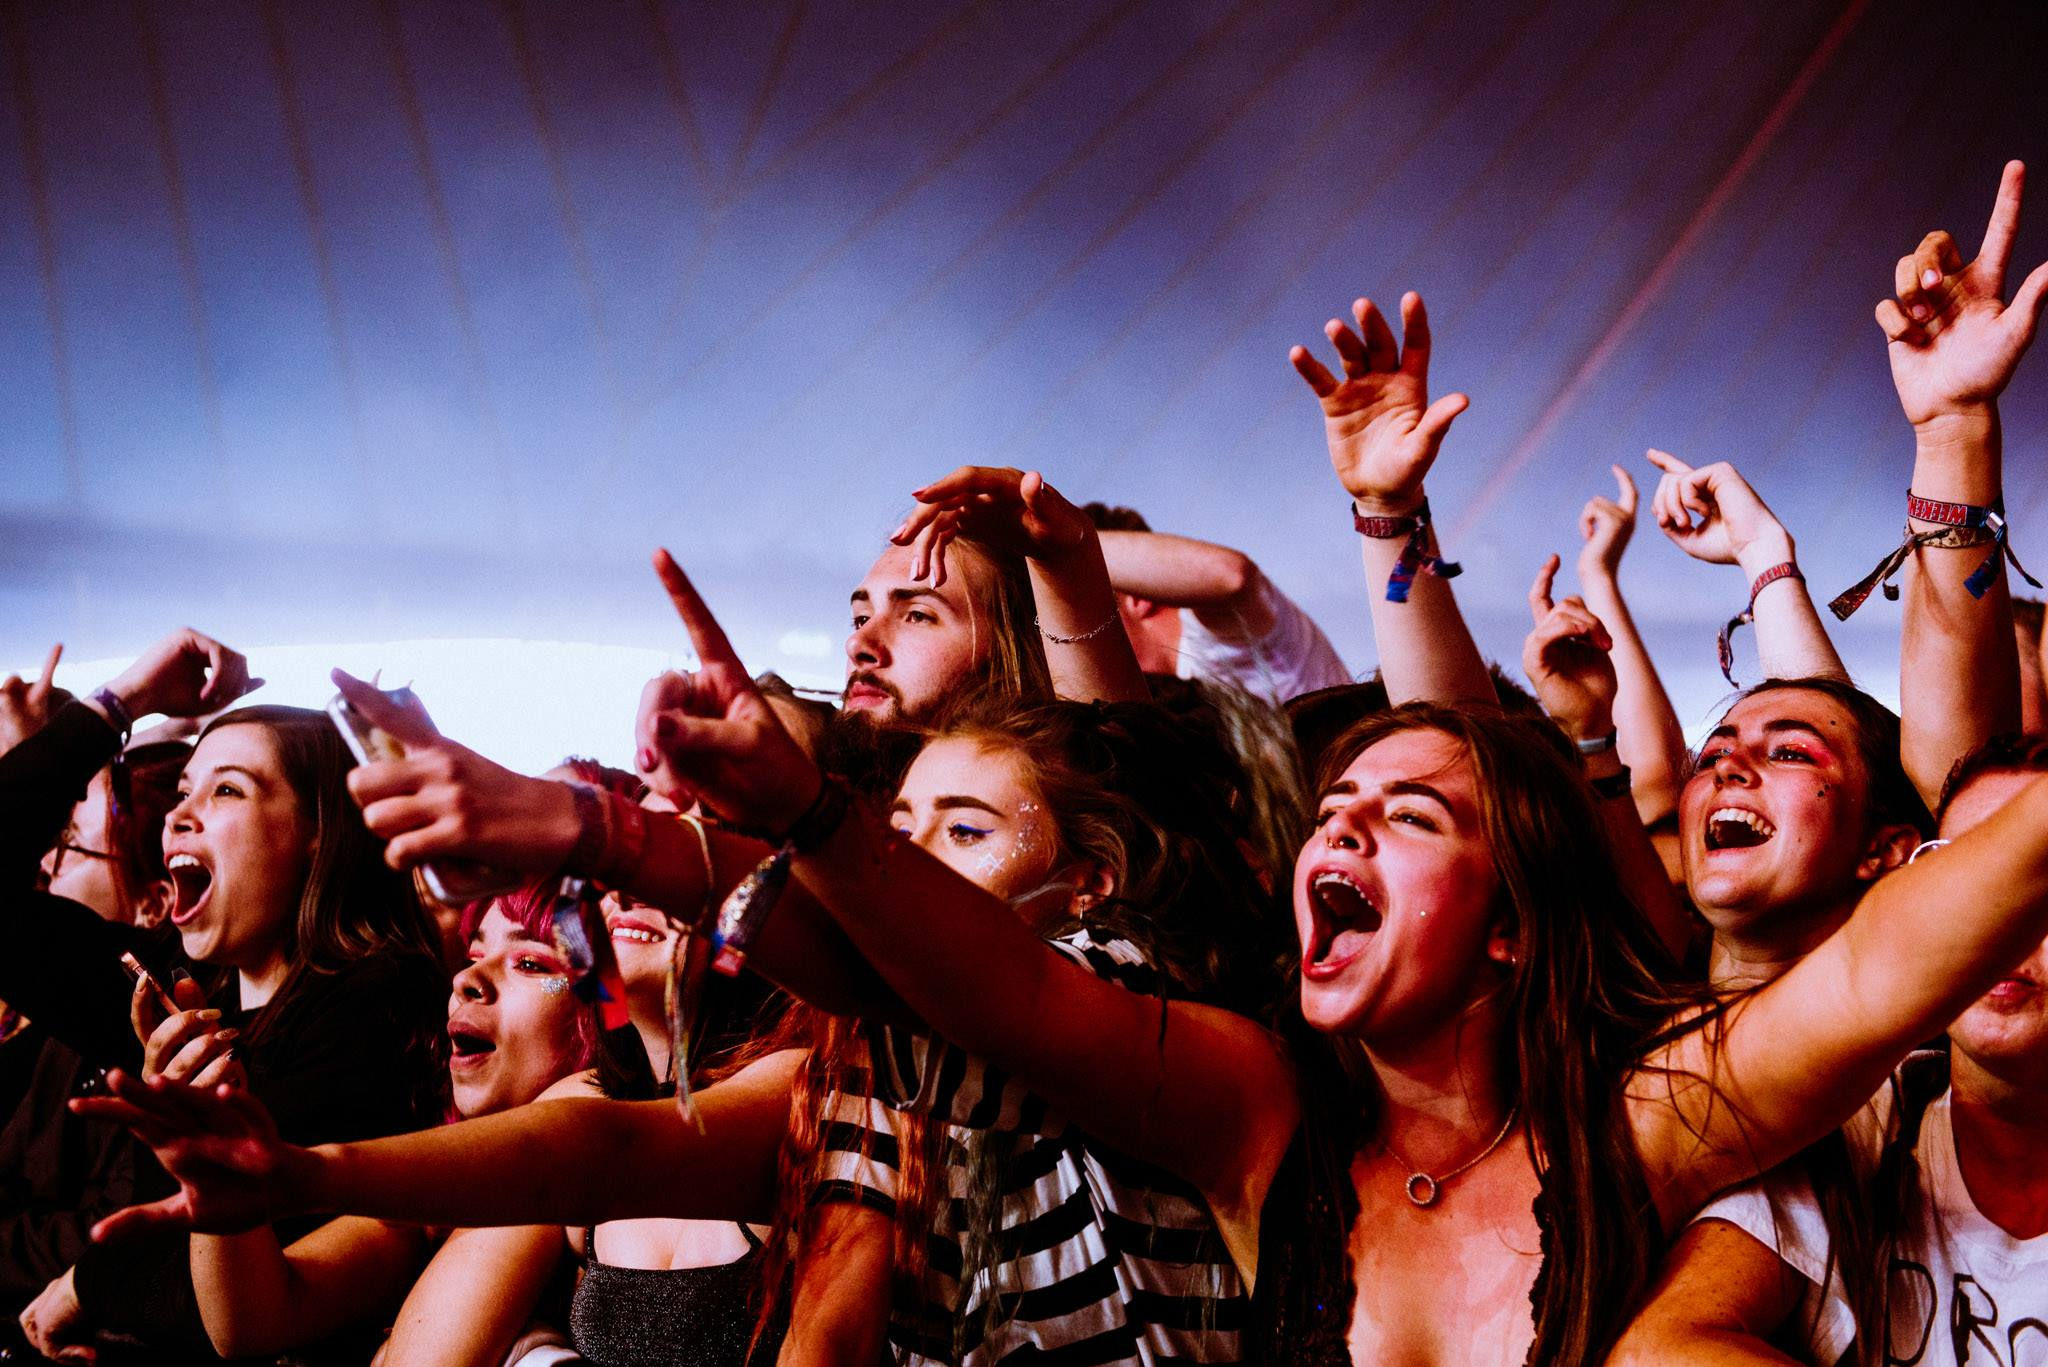 fe17ba0cb6 Top 20 Music Festivals In The UK 2019 - Festicket Magazine